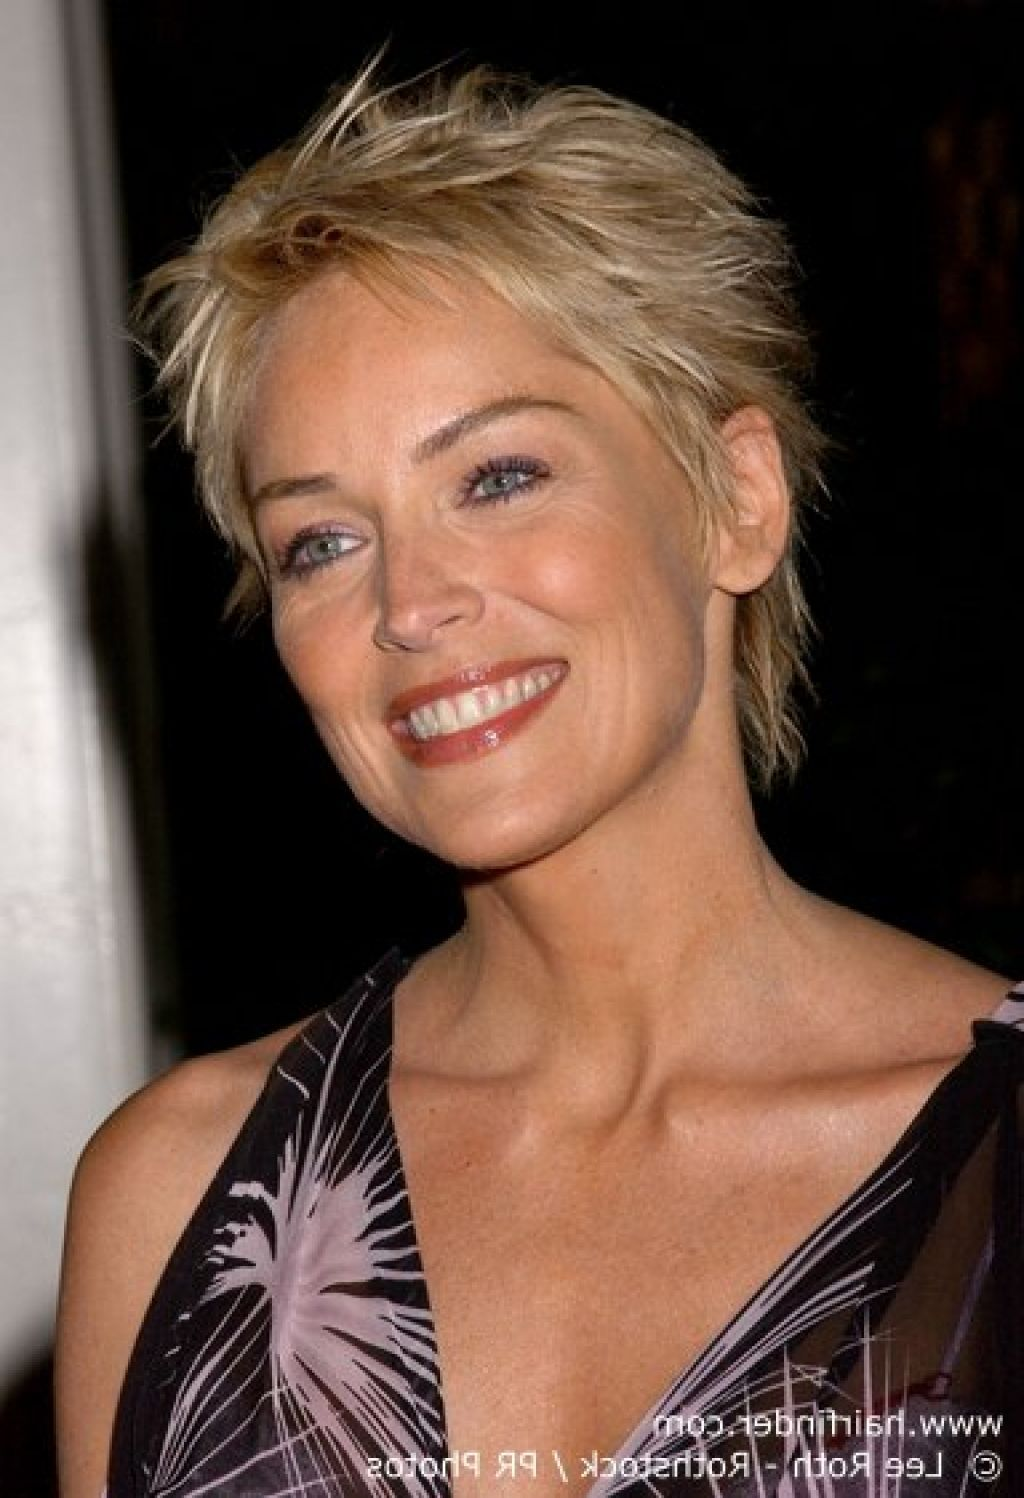 Short Hairstyles Like Sharon Stone 2015 | cortes de ...